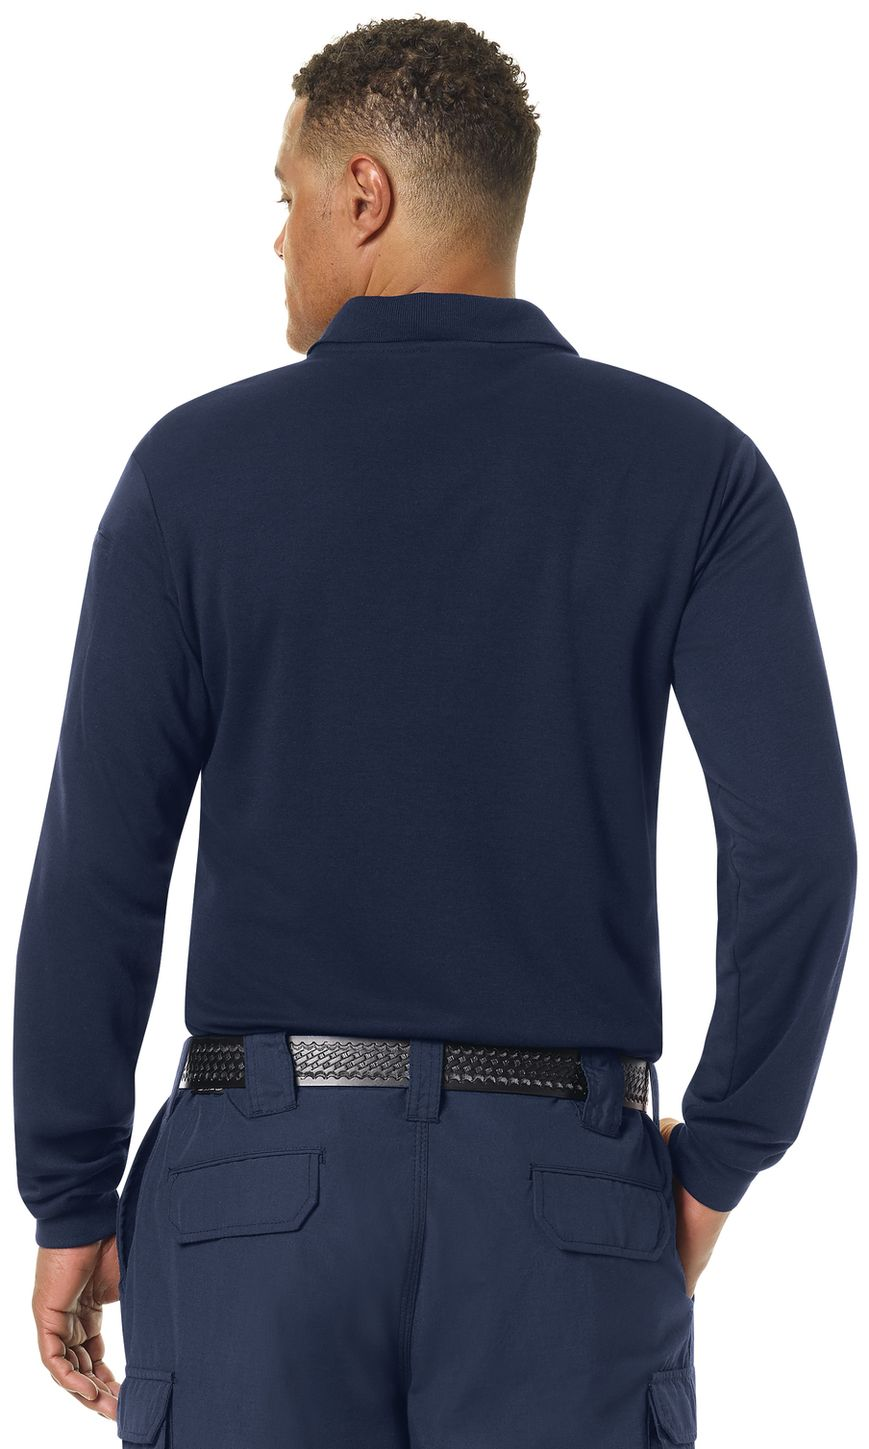 workrite-fr-polo-shirt-ft20-long-sleeve-station-wear-navy-example-back.jpg